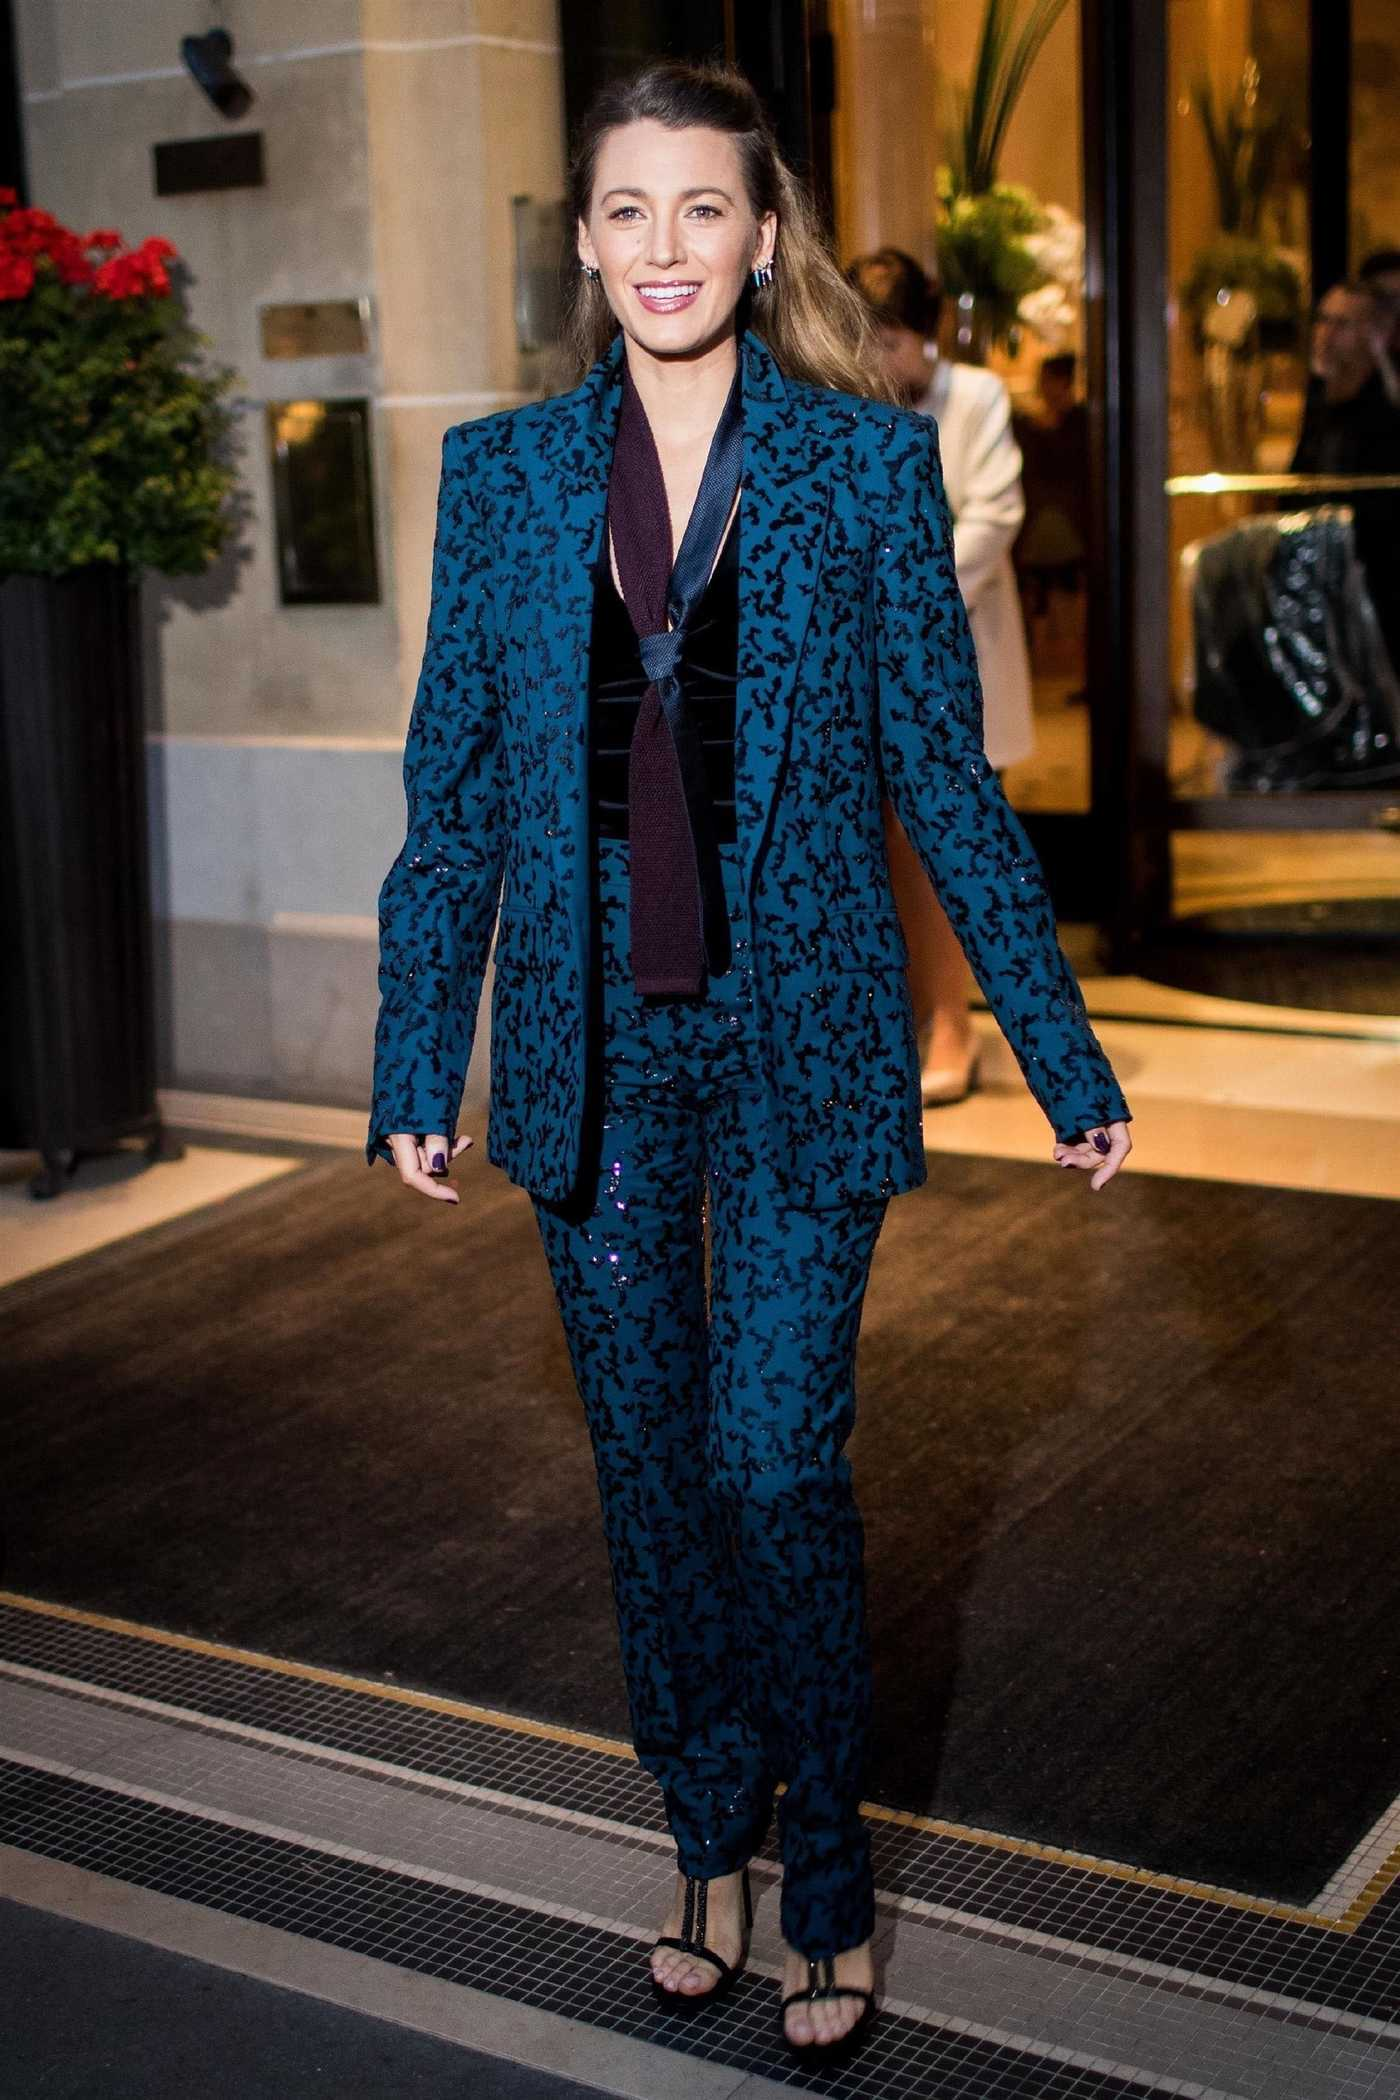 Blake Lively Leaves the Hotel Plaza Athenee in Paris 09/18/2018